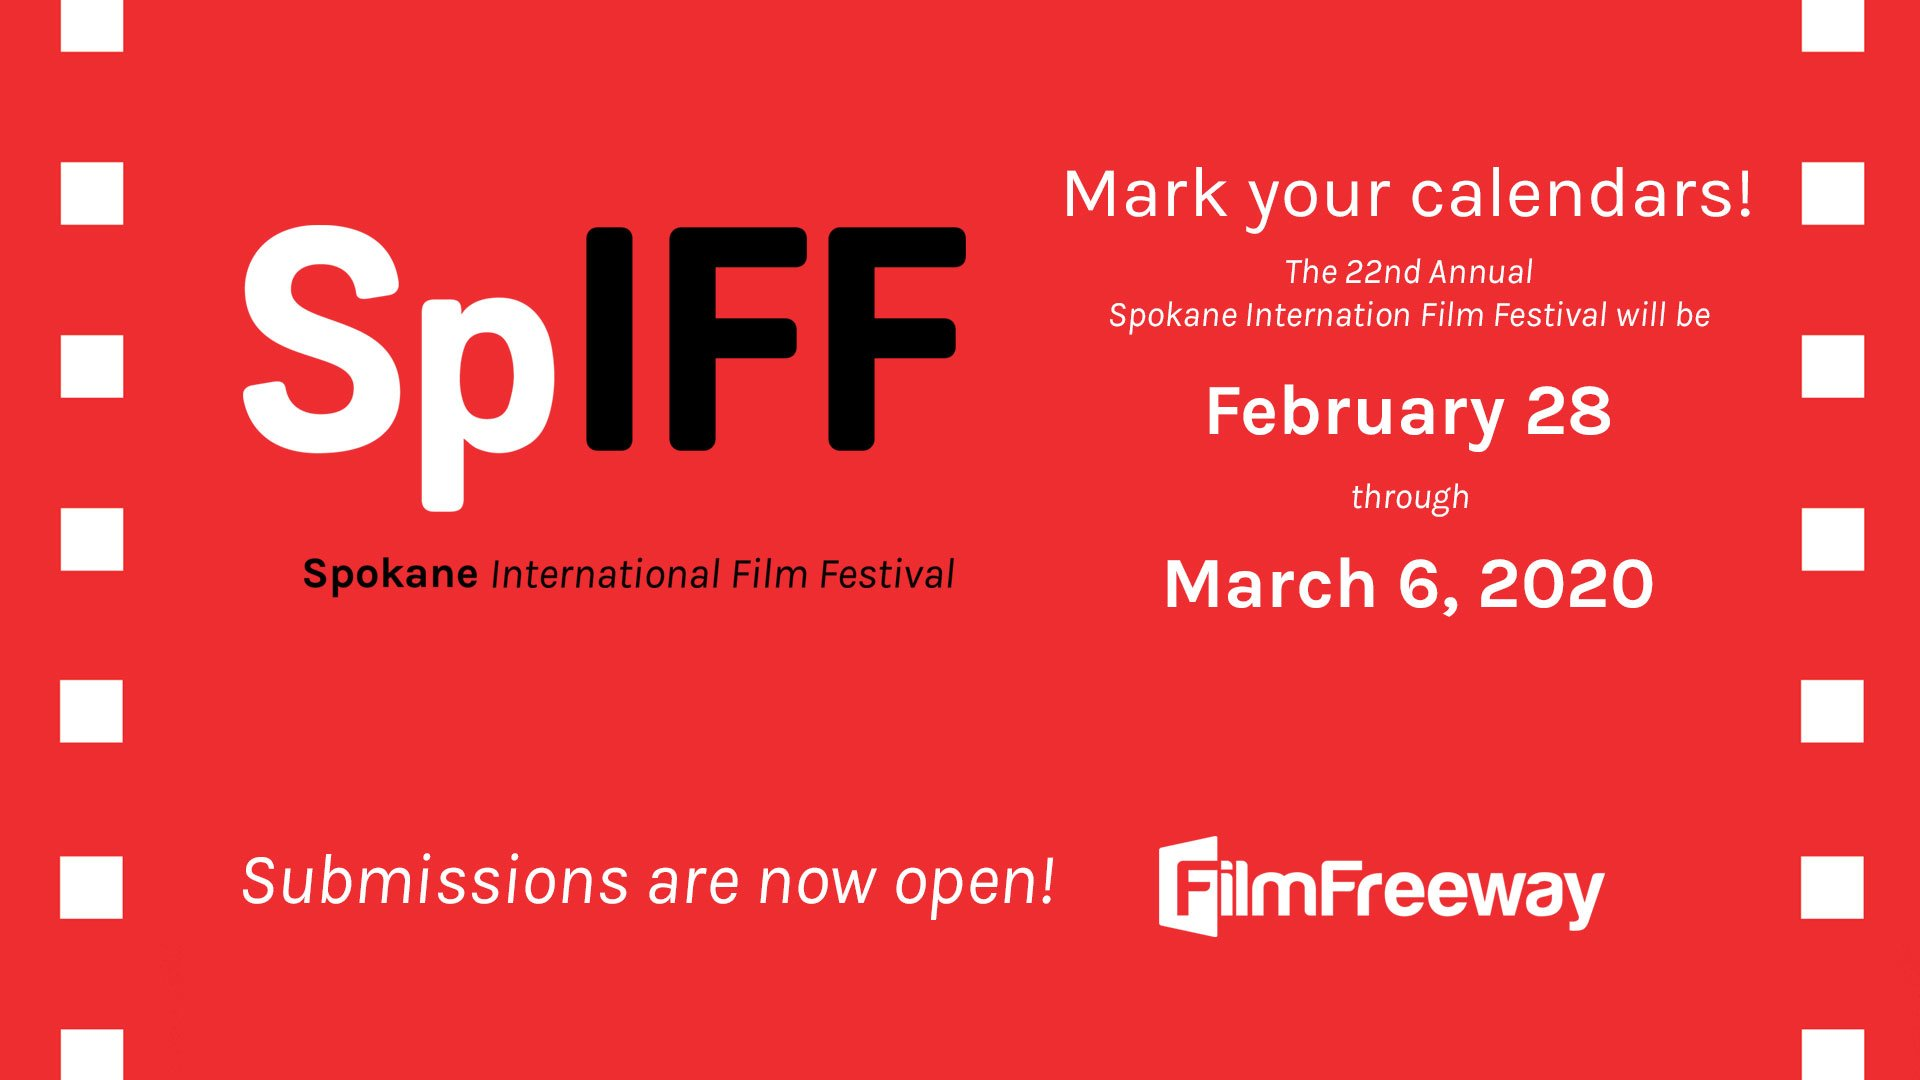 Mark your calendars! The 22nd annual spokane international film festival will be February 28 through March 6, 2020. Submissions are now open at Film Freeway!